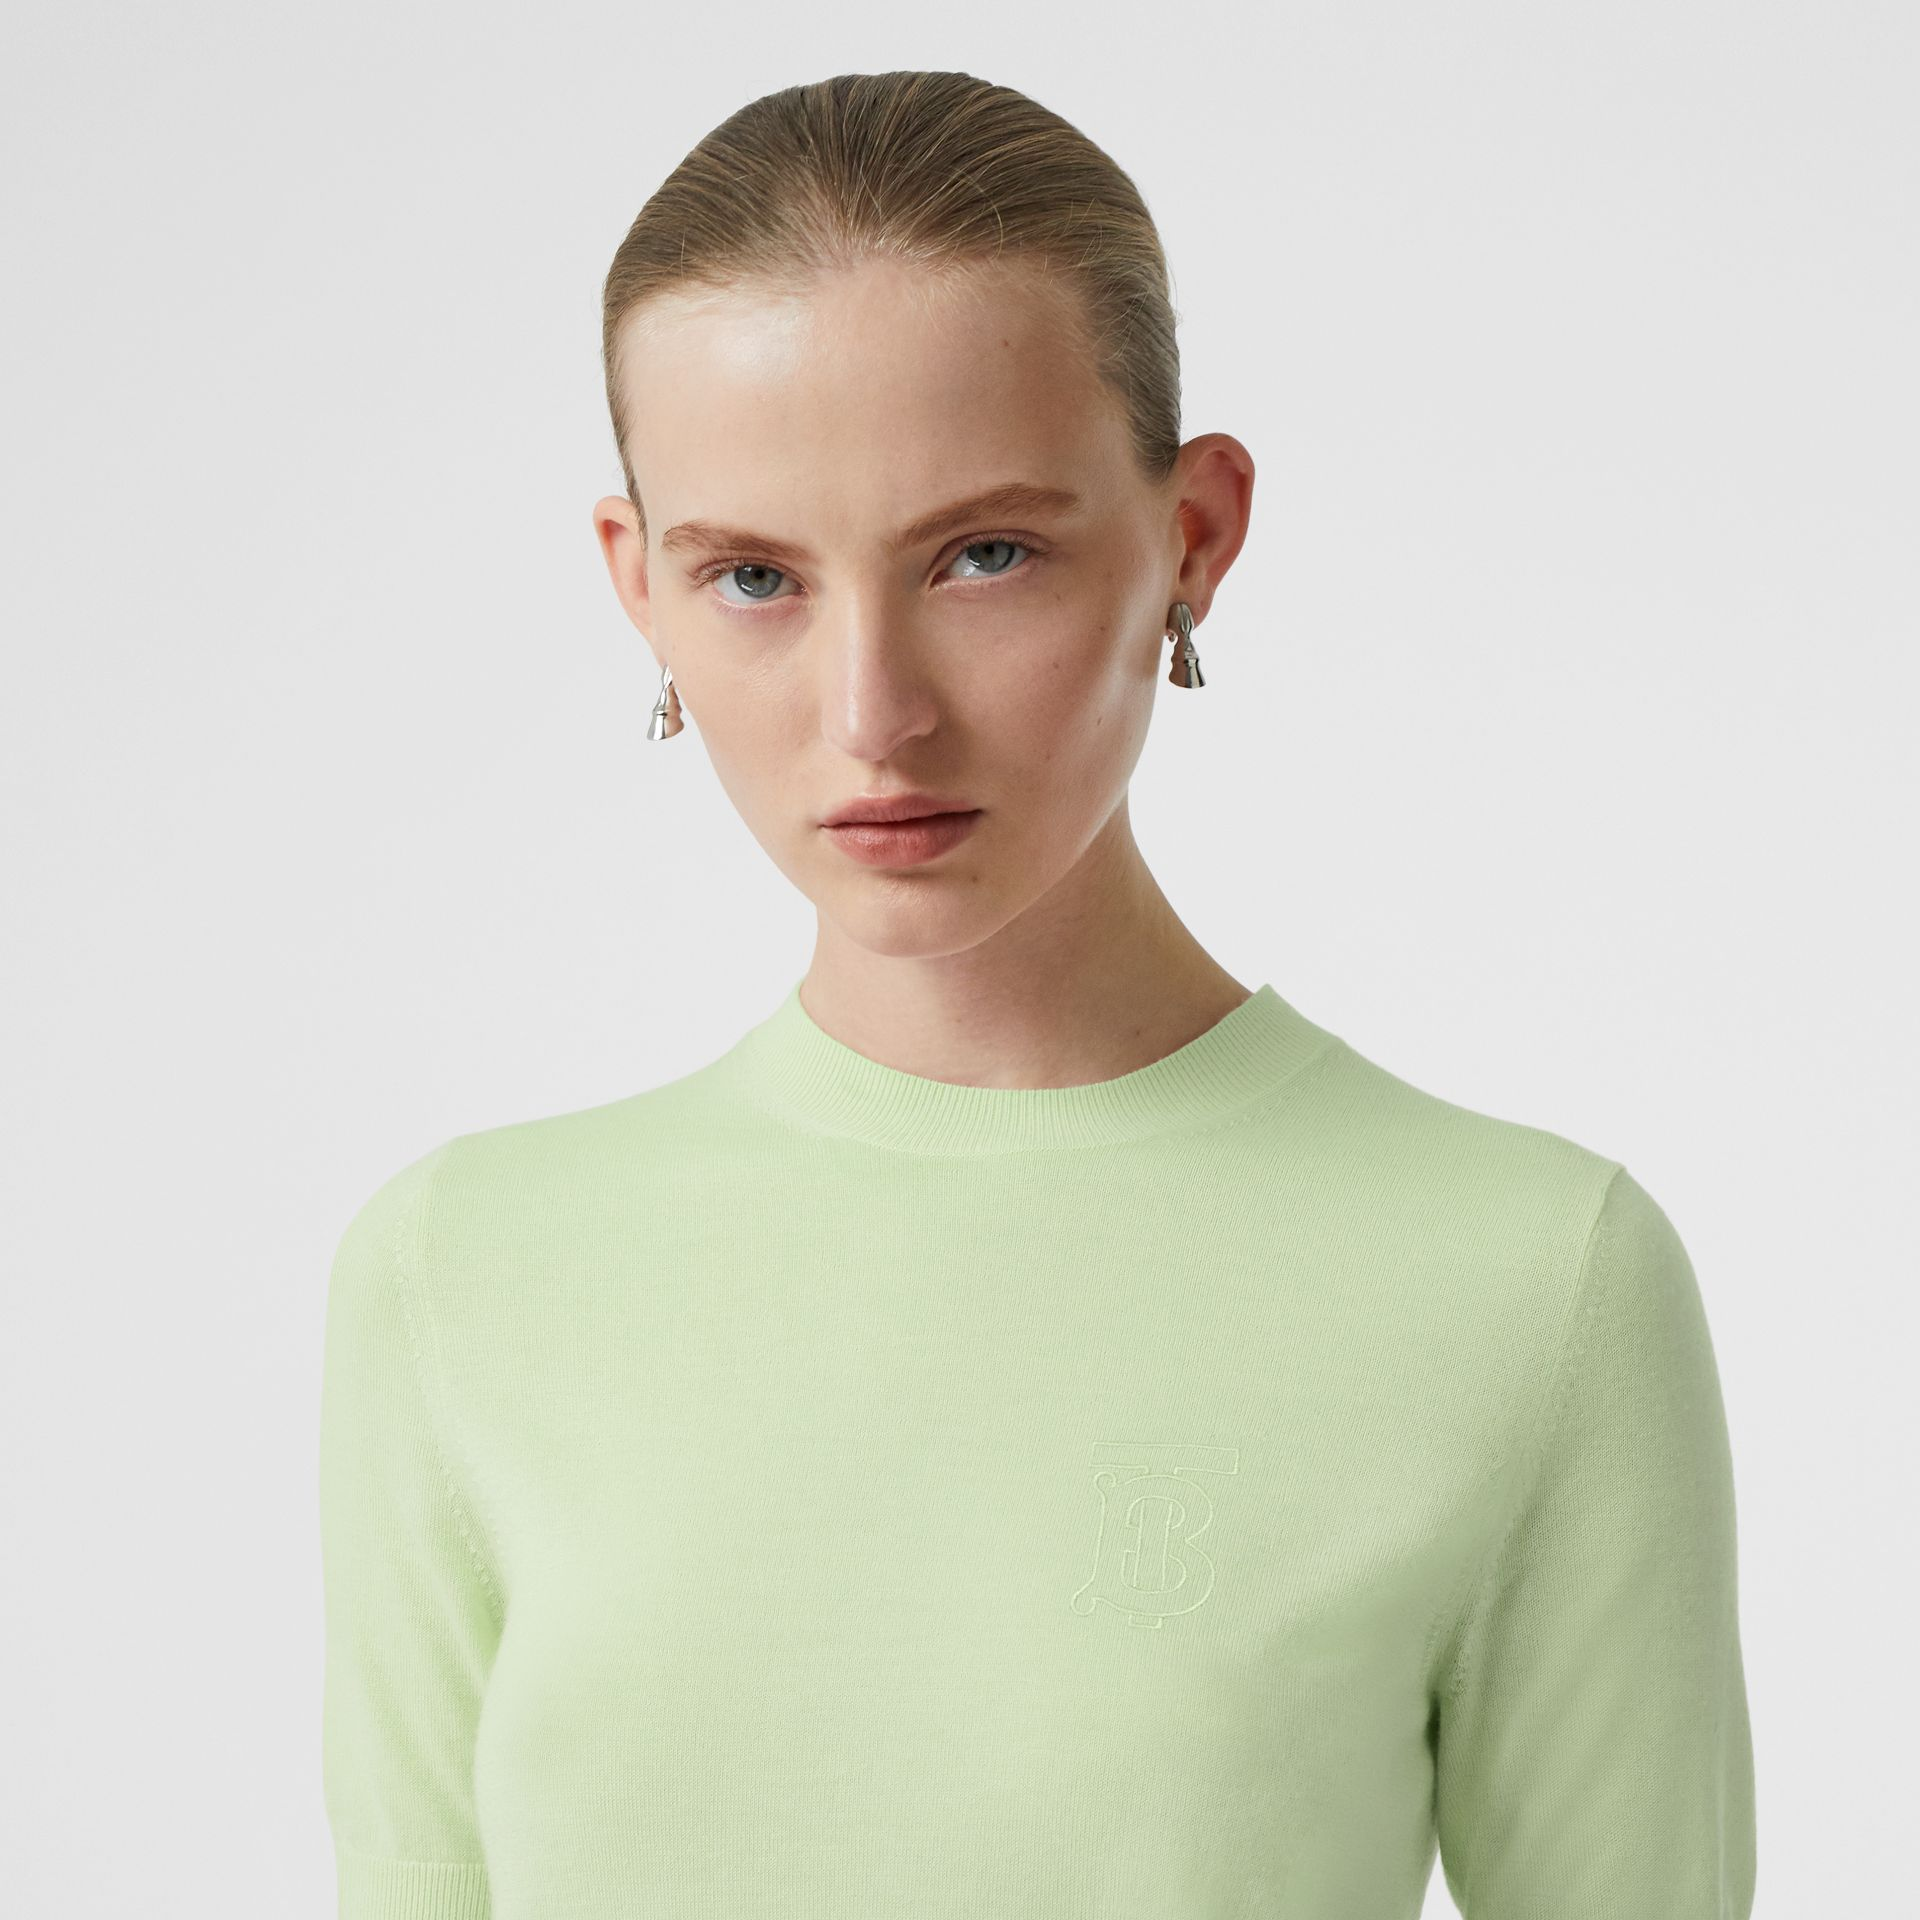 Monogram Motif Cashmere Top in Pistachio - Women | Burberry United Kingdom - gallery image 1